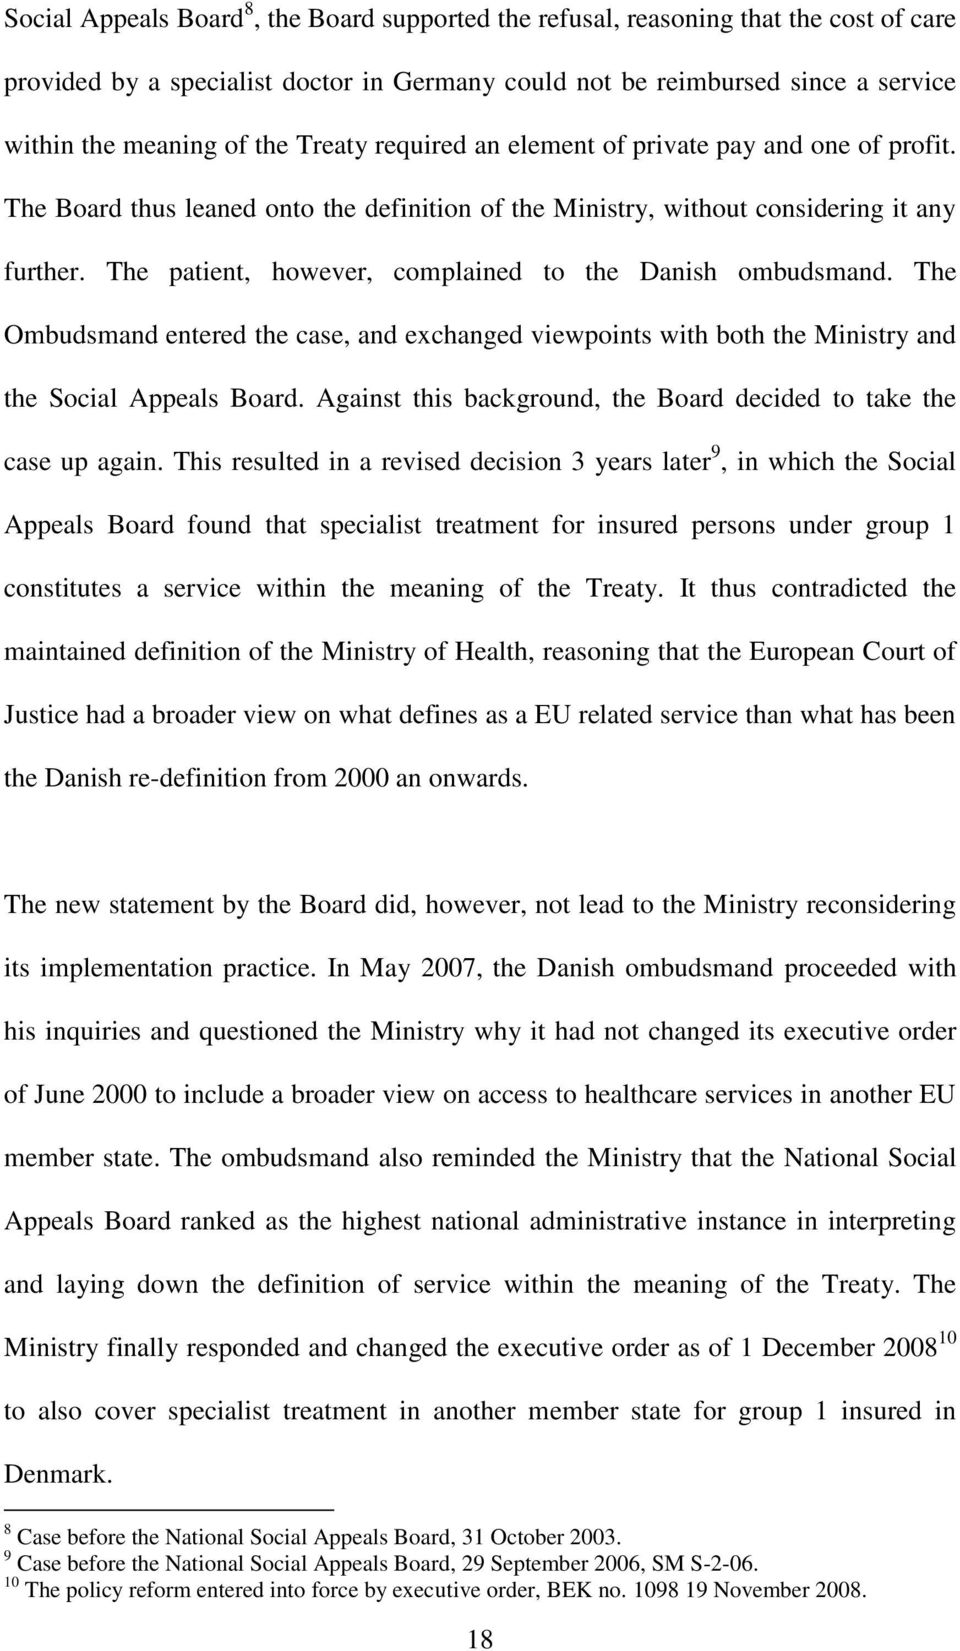 The patient, however, complained to the Danish ombudsmand. The Ombudsmand entered the case, and exchanged viewpoints with both the Ministry and the Social Appeals Board.